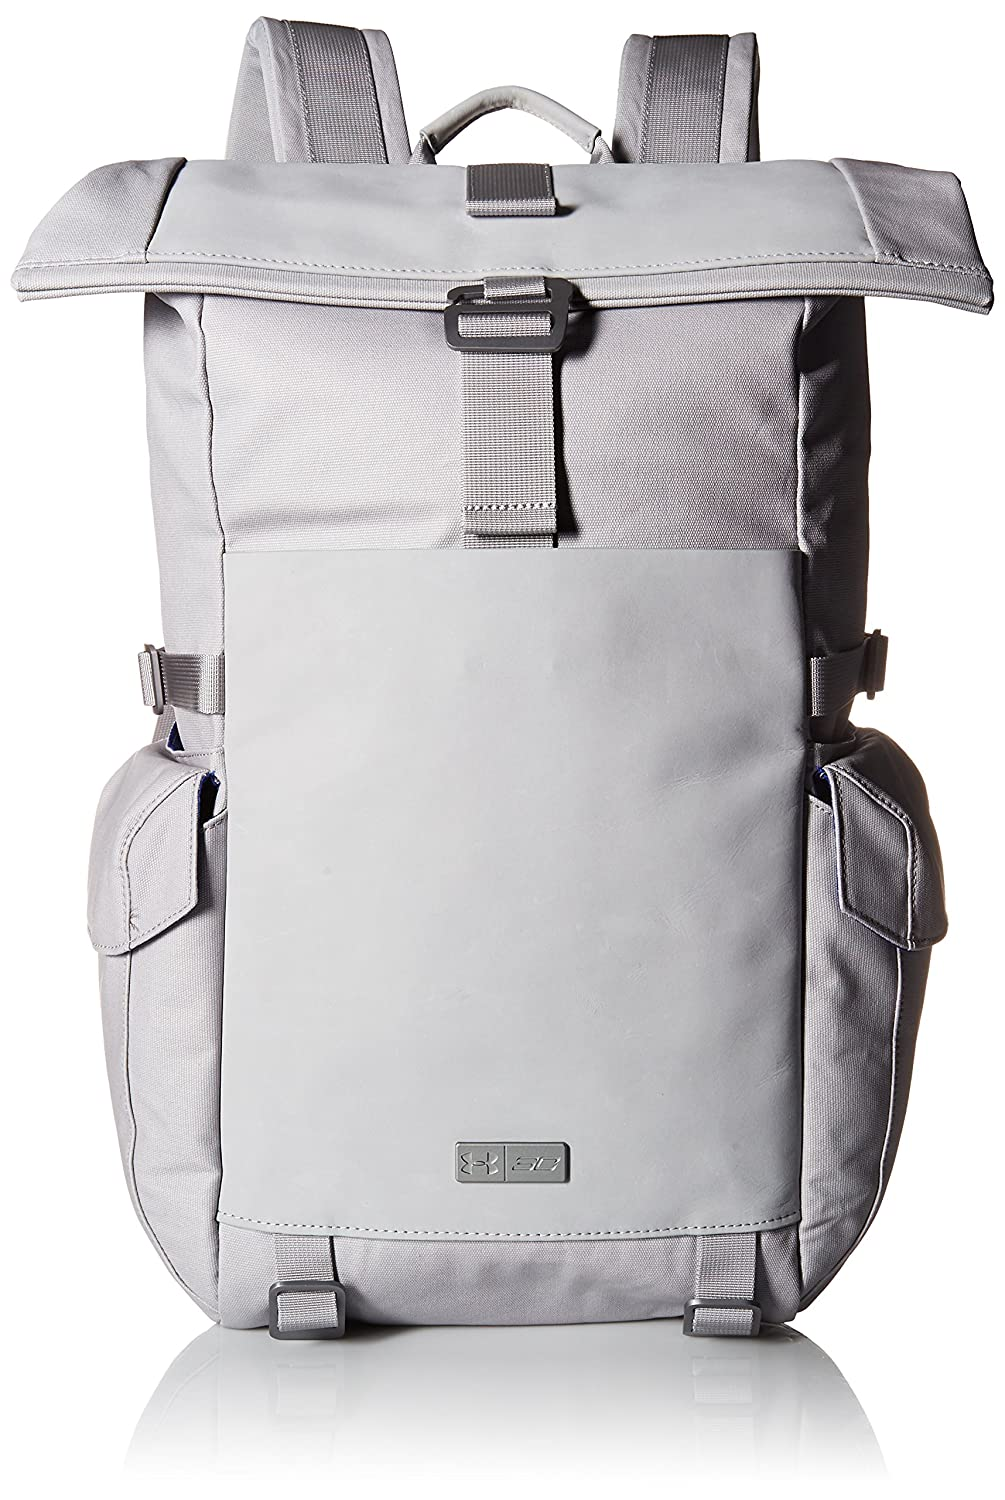 Under Armour Unisex Arrivals Series Curry Backpack